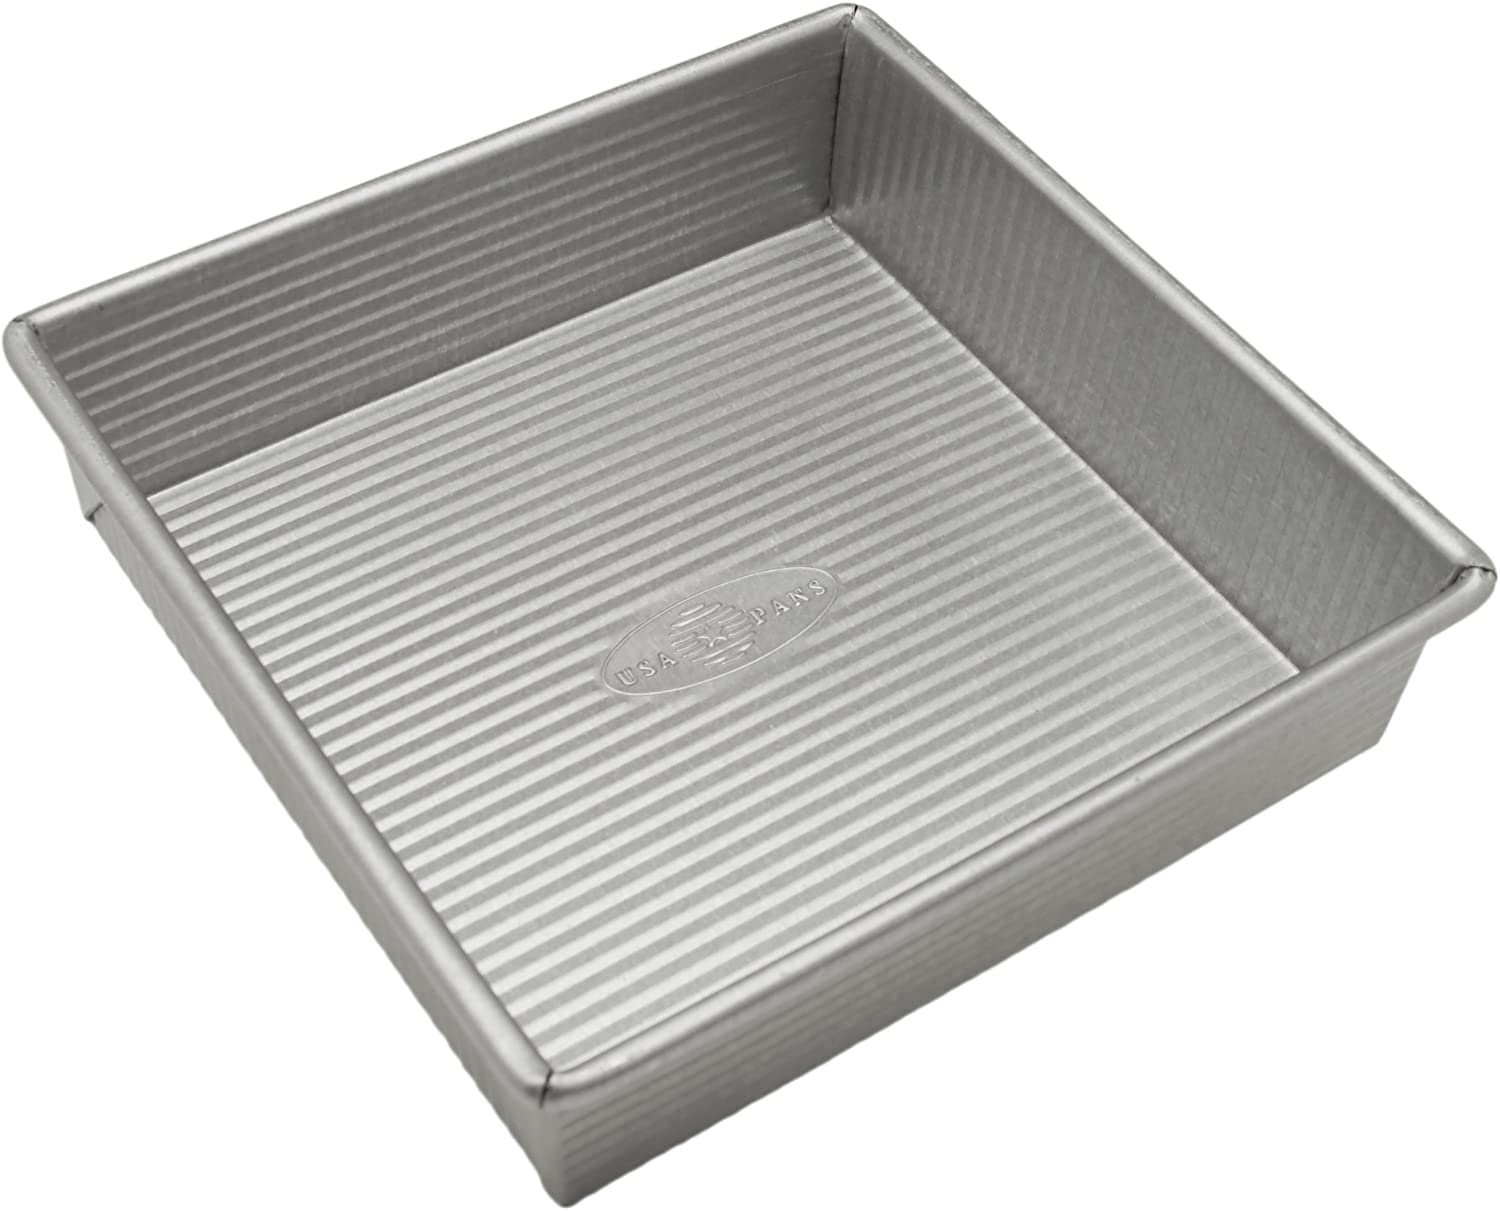 Amazon Com Usa Pan Bakeware Square Cake Pan 8 Inch Nonstick Quick Release Coating Made In The Usa From Aluminized Steel Usa Pans Bakeware Kitchen Dining